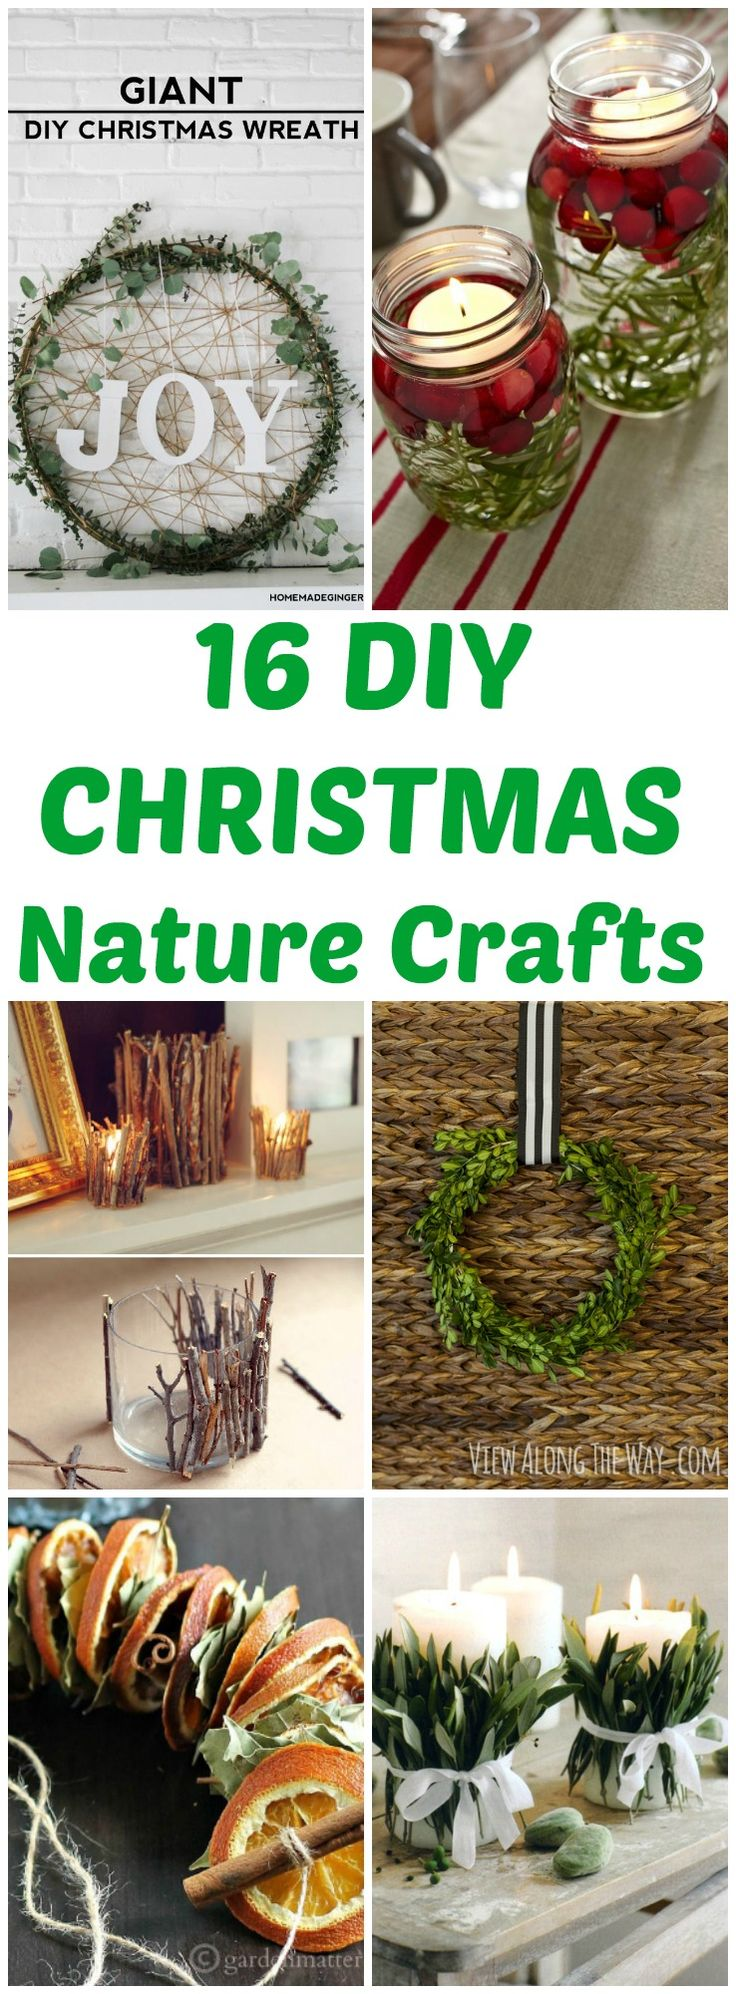 16 DIY Christmas rustic nature craft projects that are cheap, fast and easy! #diychristmas #christmas #naturecrafts #christmasdecor